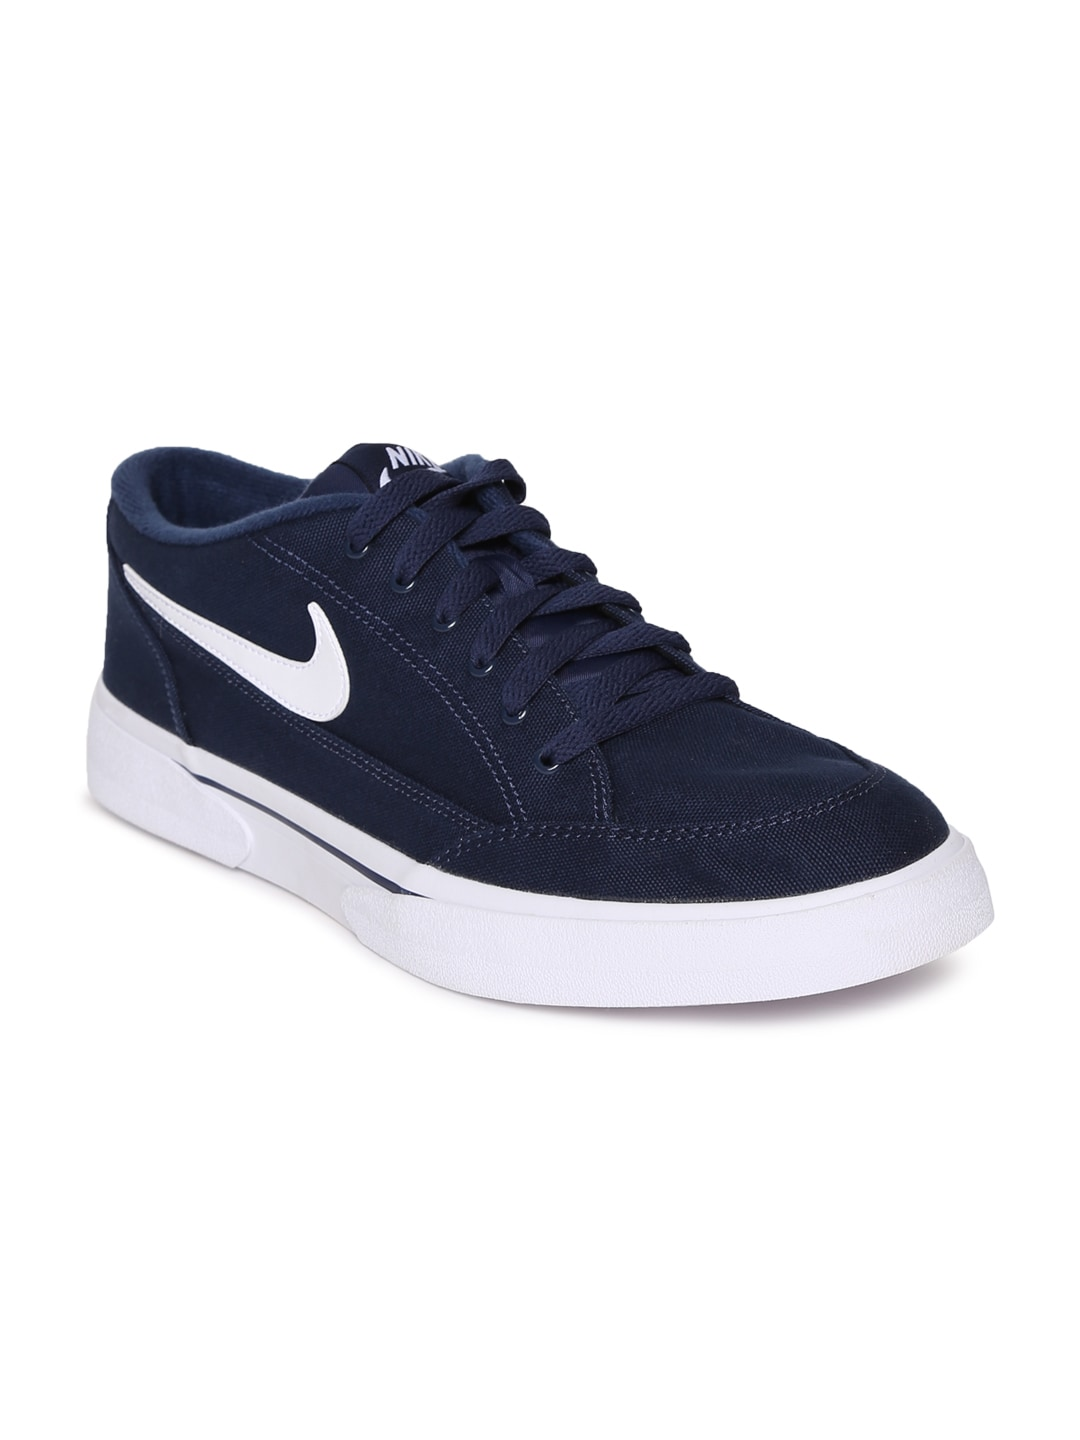 Nike Online In India Mens Buy Shoes QBoWrCedxE